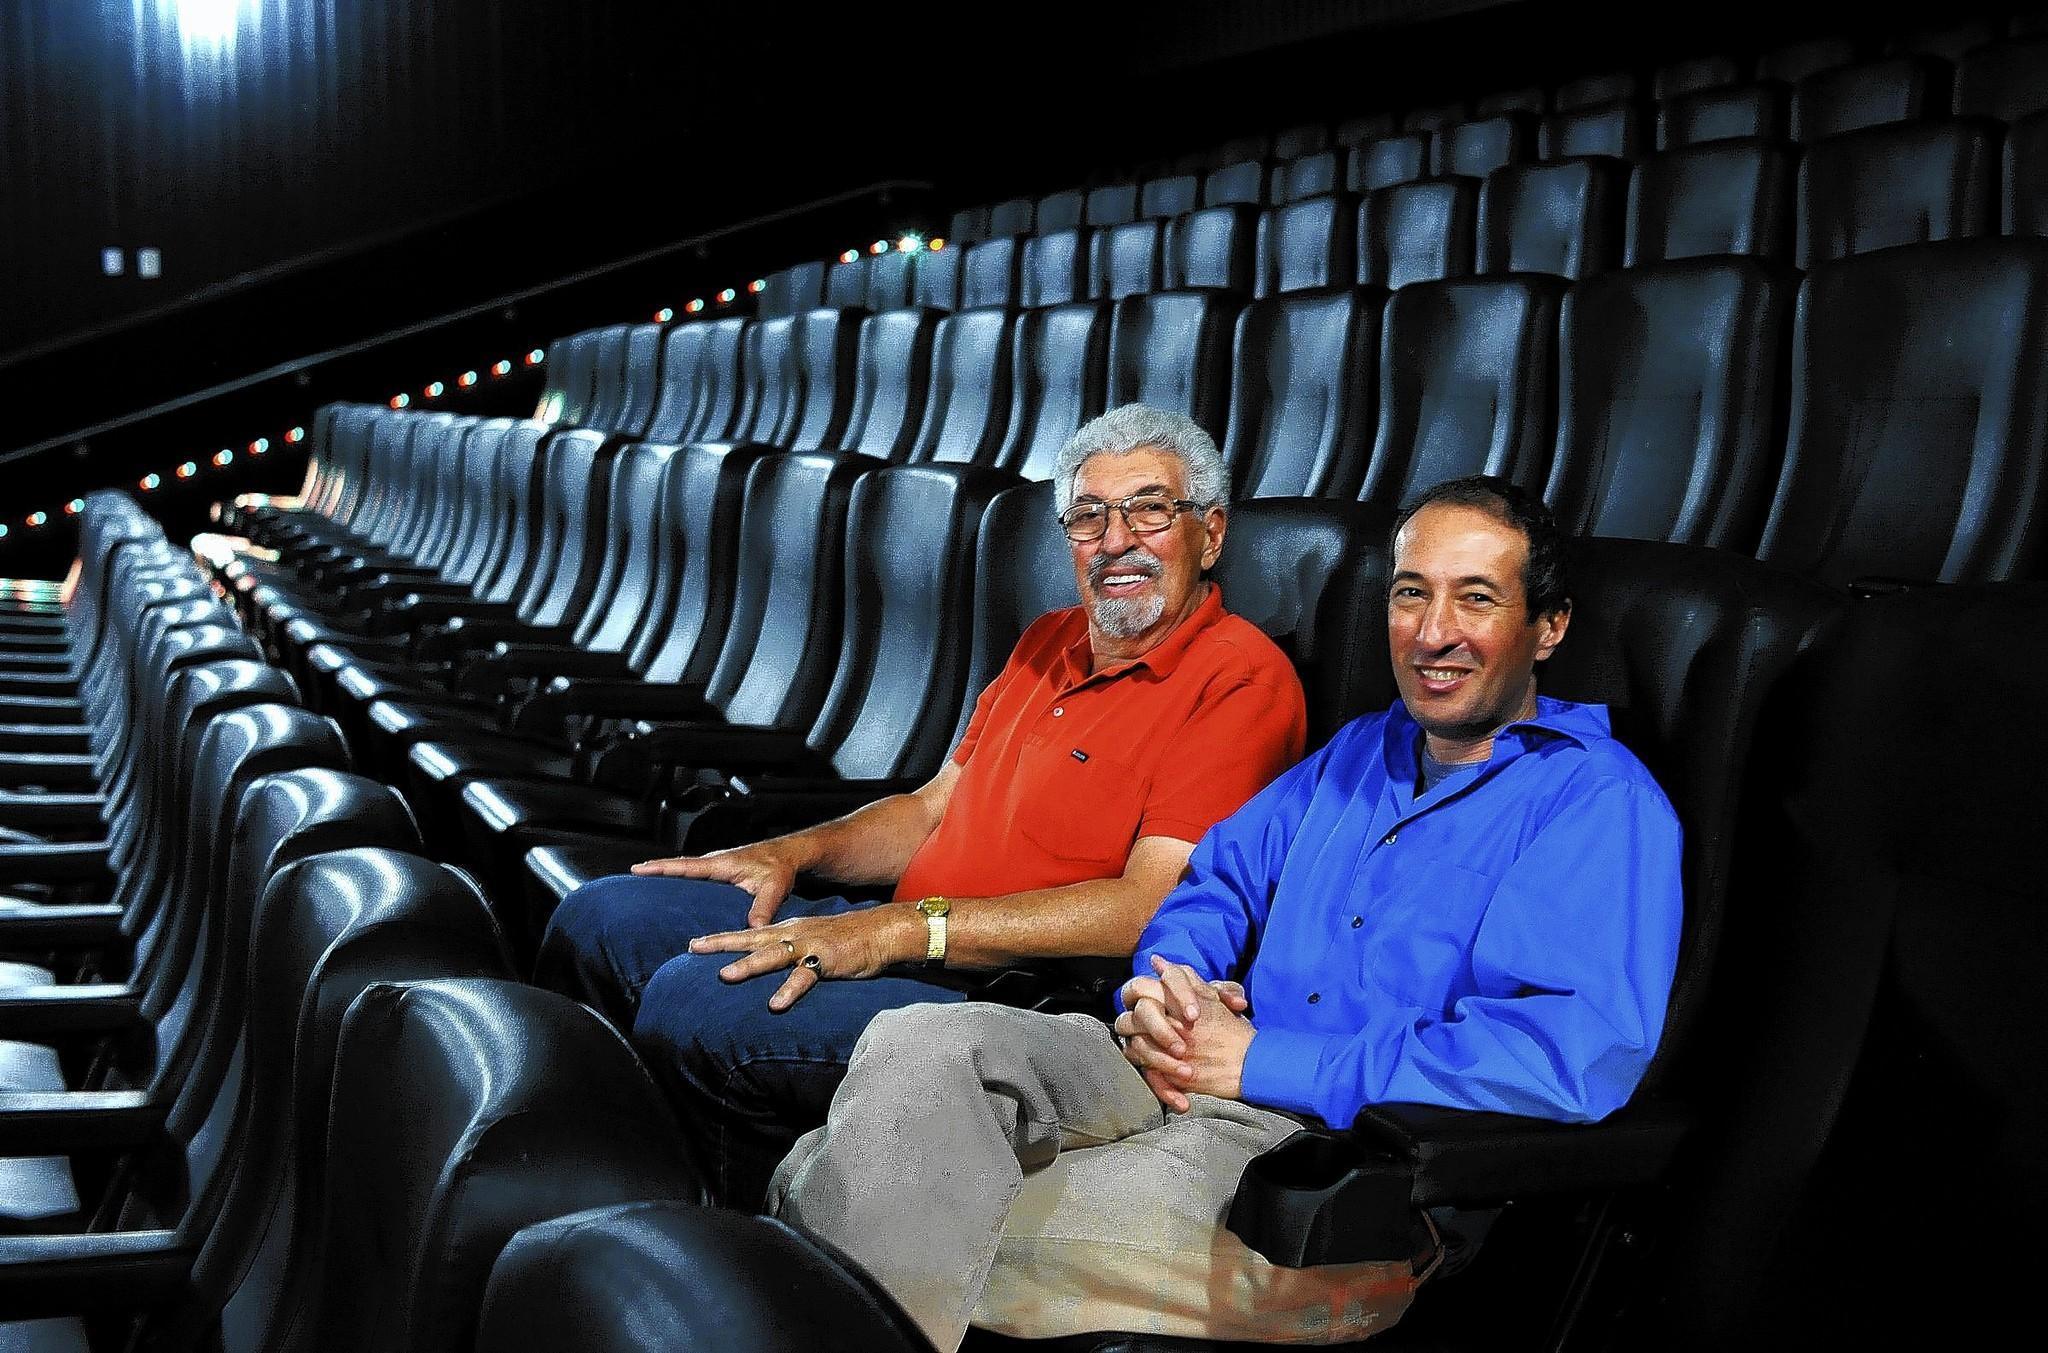 """Robert Laemmle and his son Greg sit at the Laemmle Royal Theatre in West Los Angeles. """"If you look at the track record of family businesses that have made it, to have survived this many generations is quite a remarkable achievement,"""" Greg Laemmle said."""